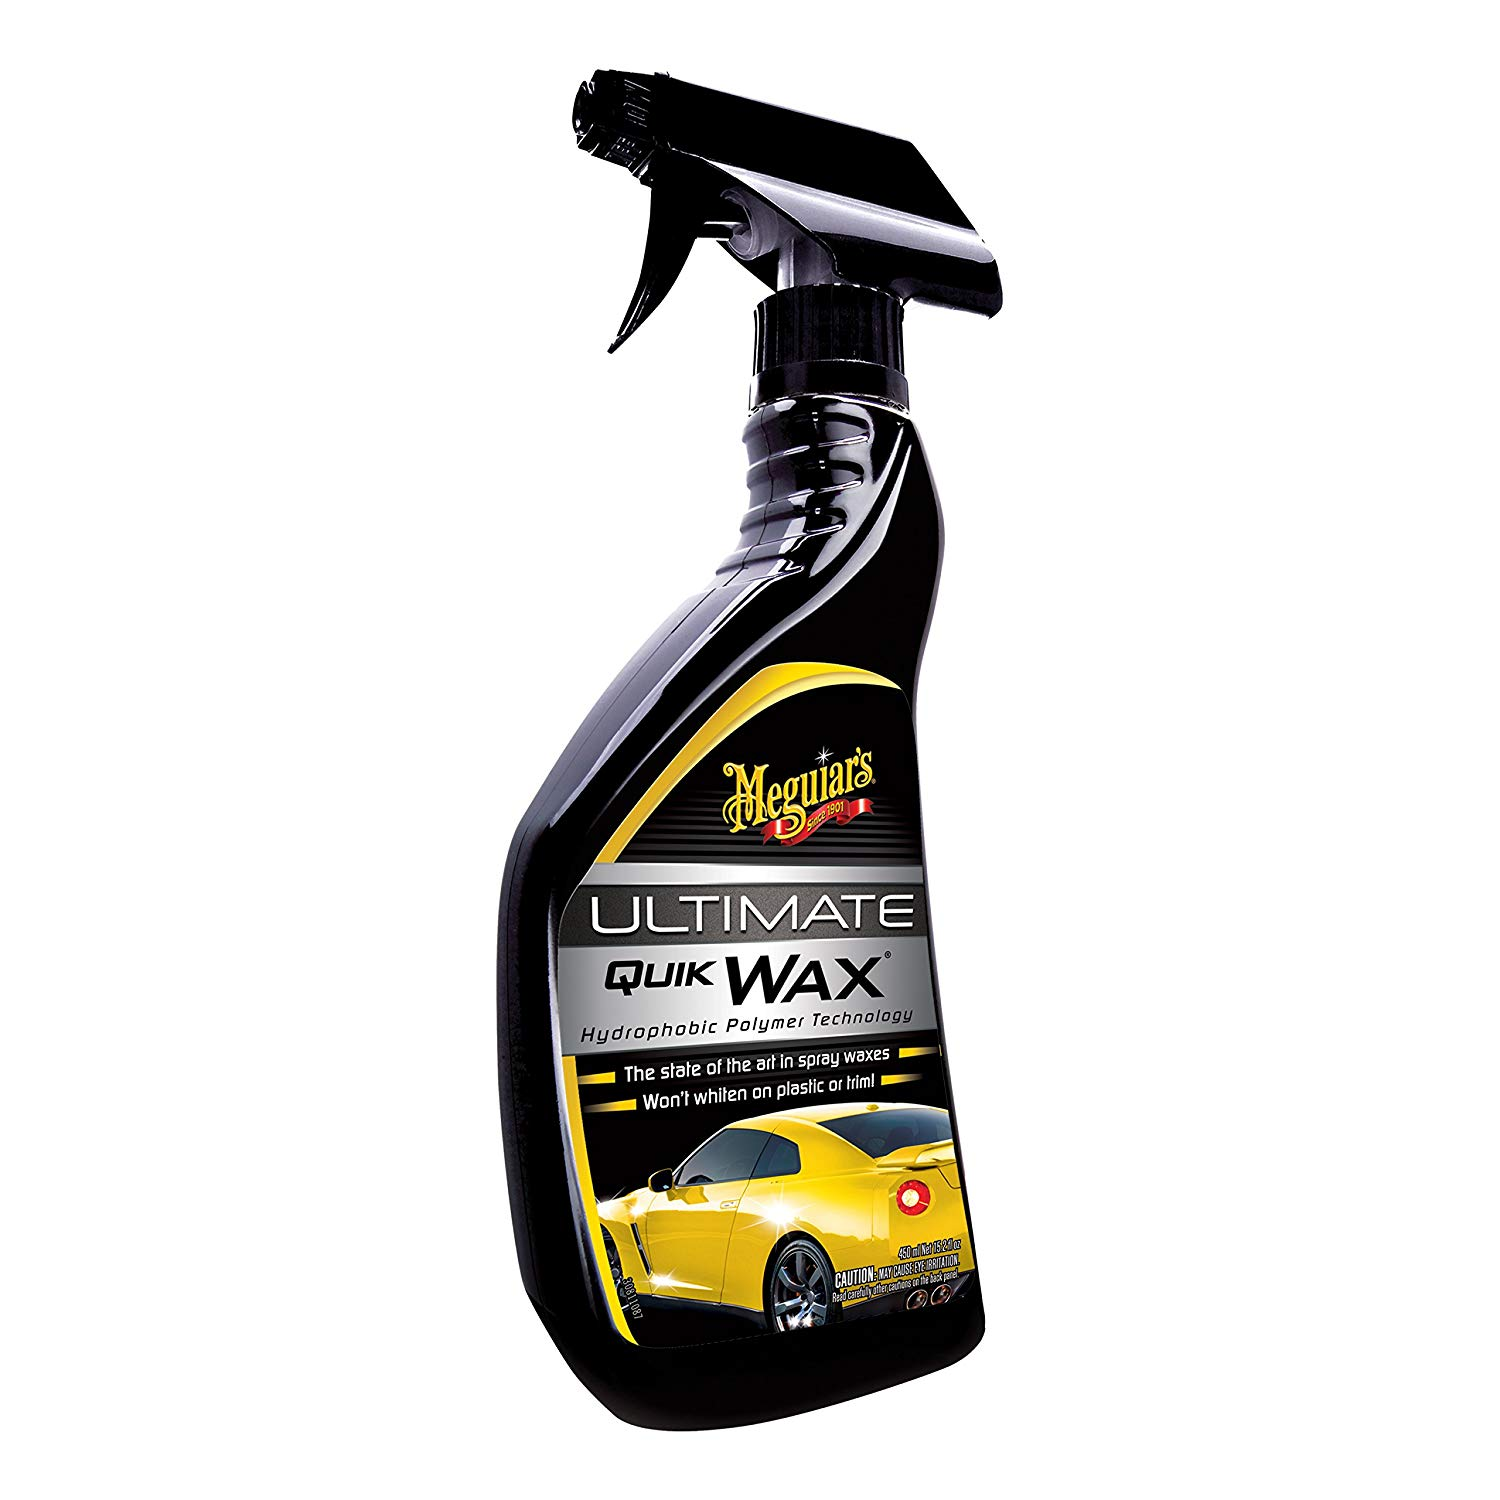 Meguiar's G17516 Ultimate Quik Wax, 15.2 Fluid Ounces